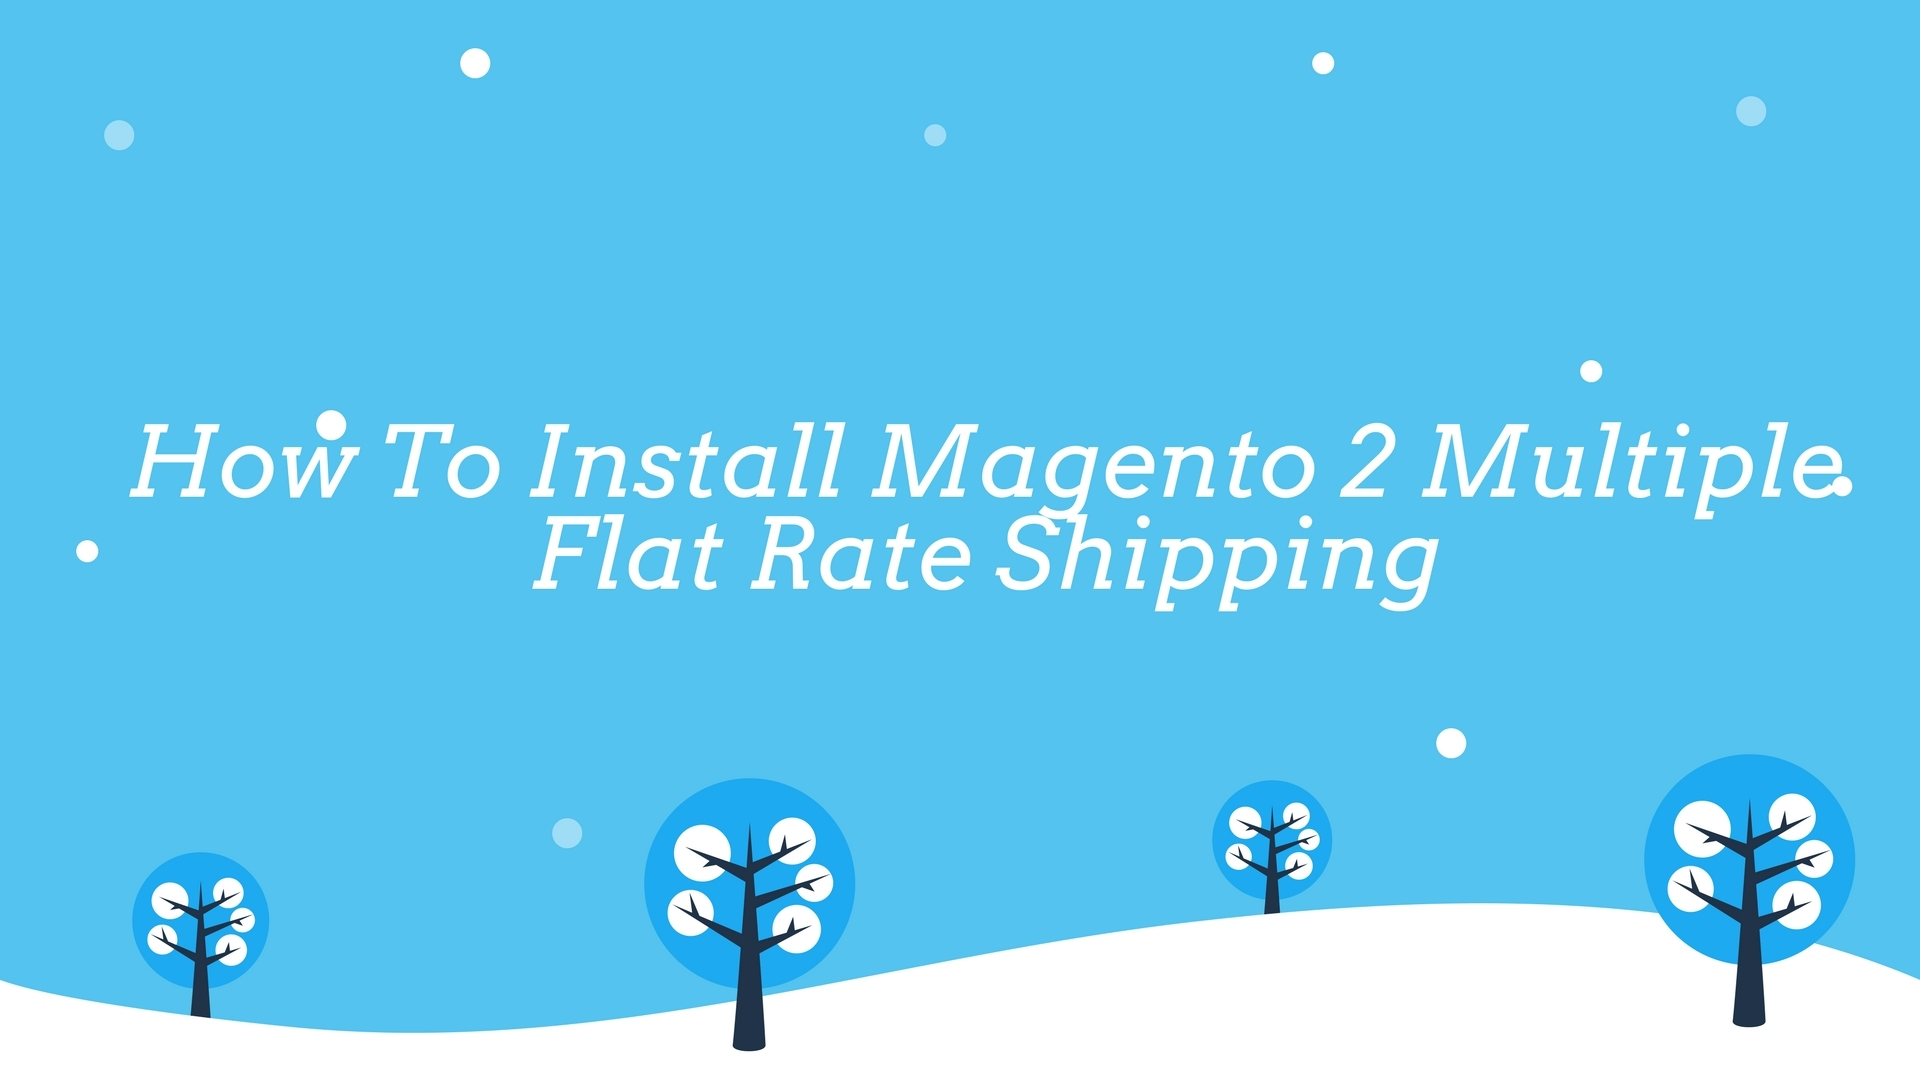 Install Magento 2 Multiple Flat Rate Shipping